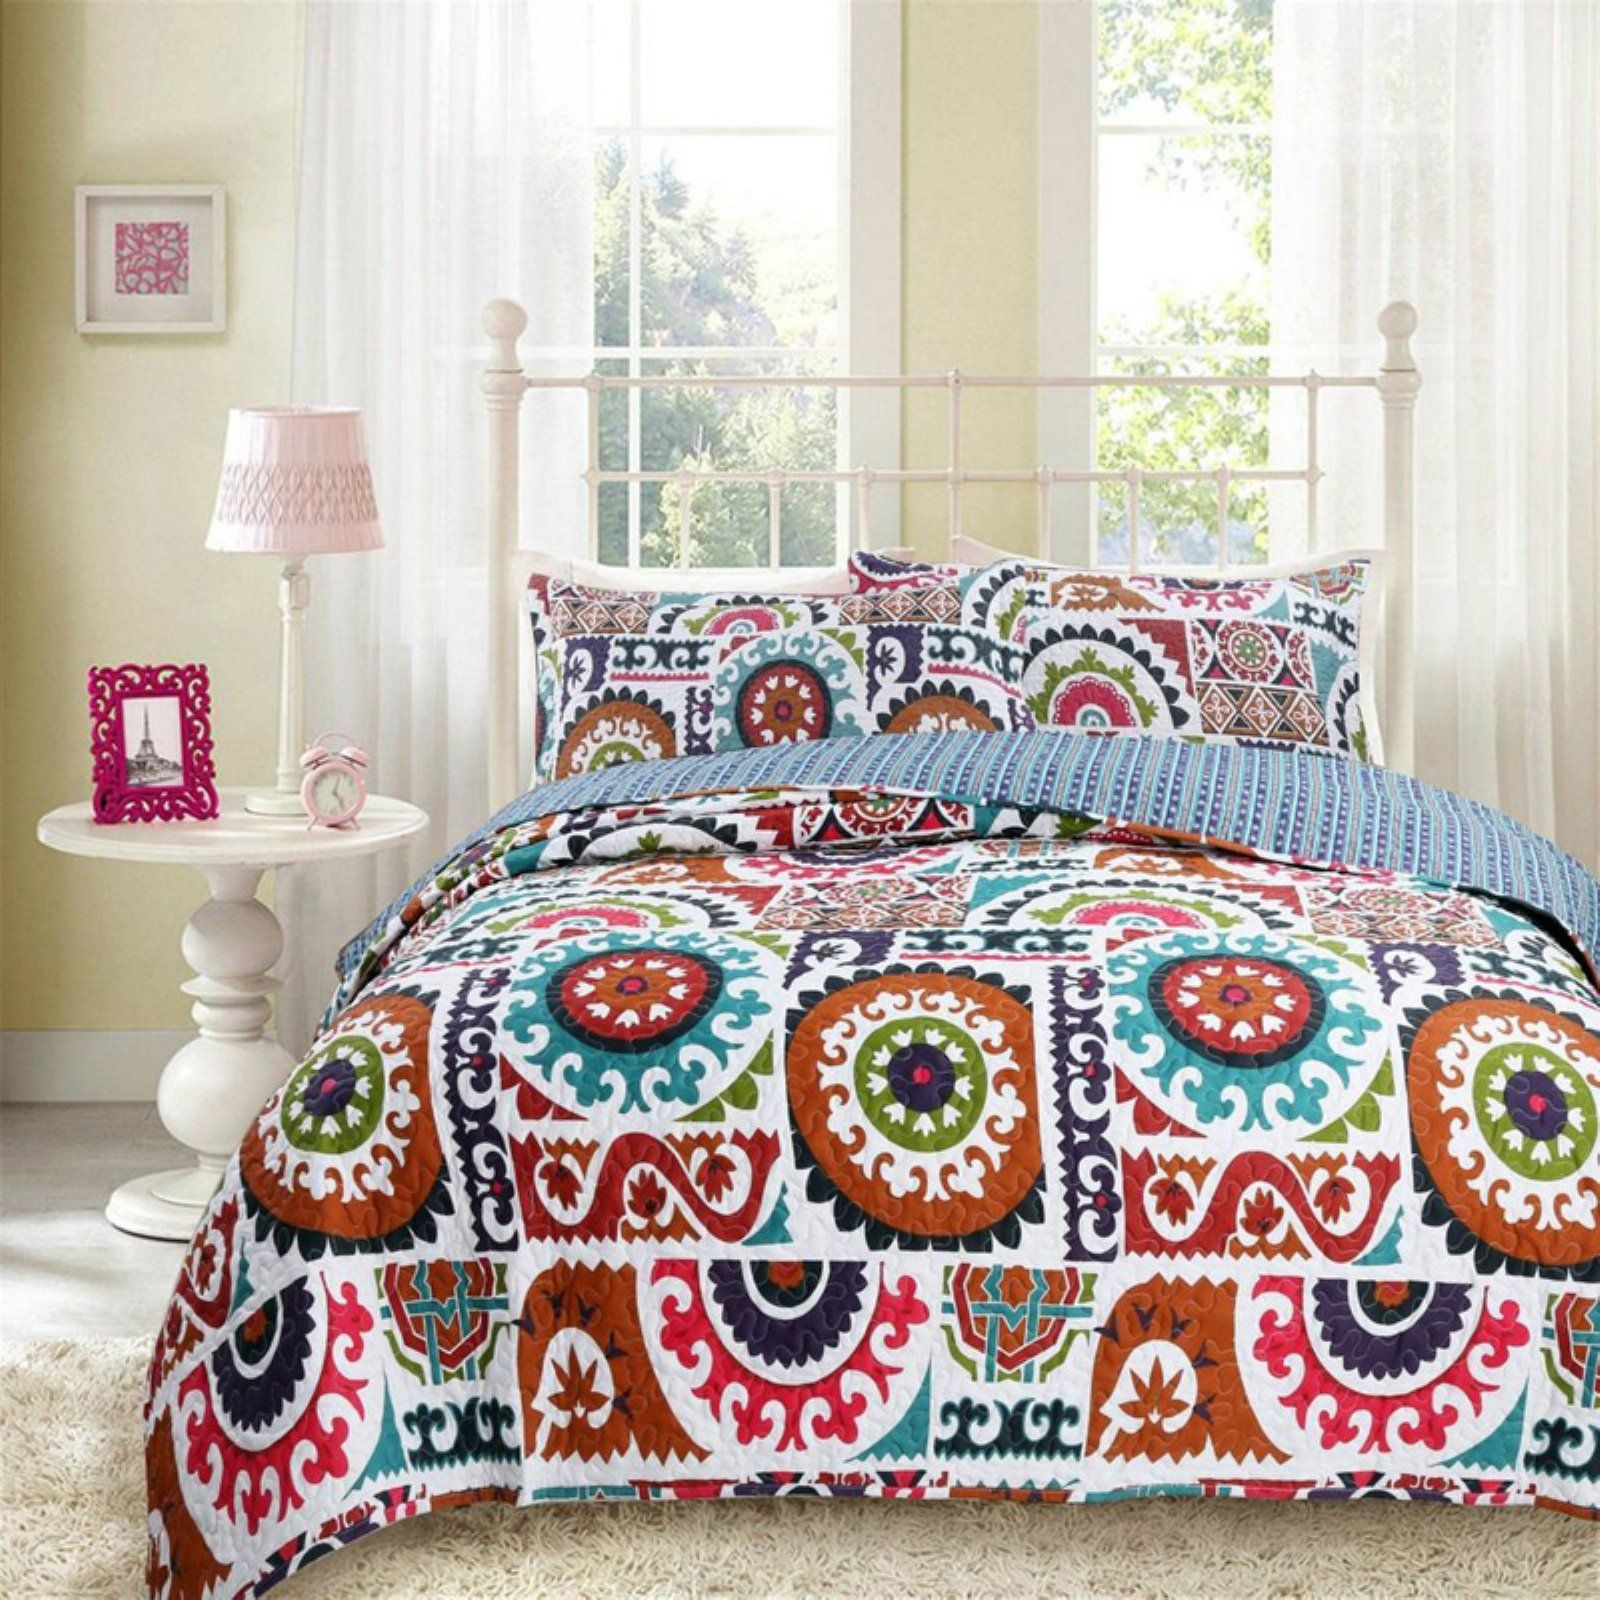 Bohemian Floral Wildfire Bedspread Set By Dada Bedding Collection